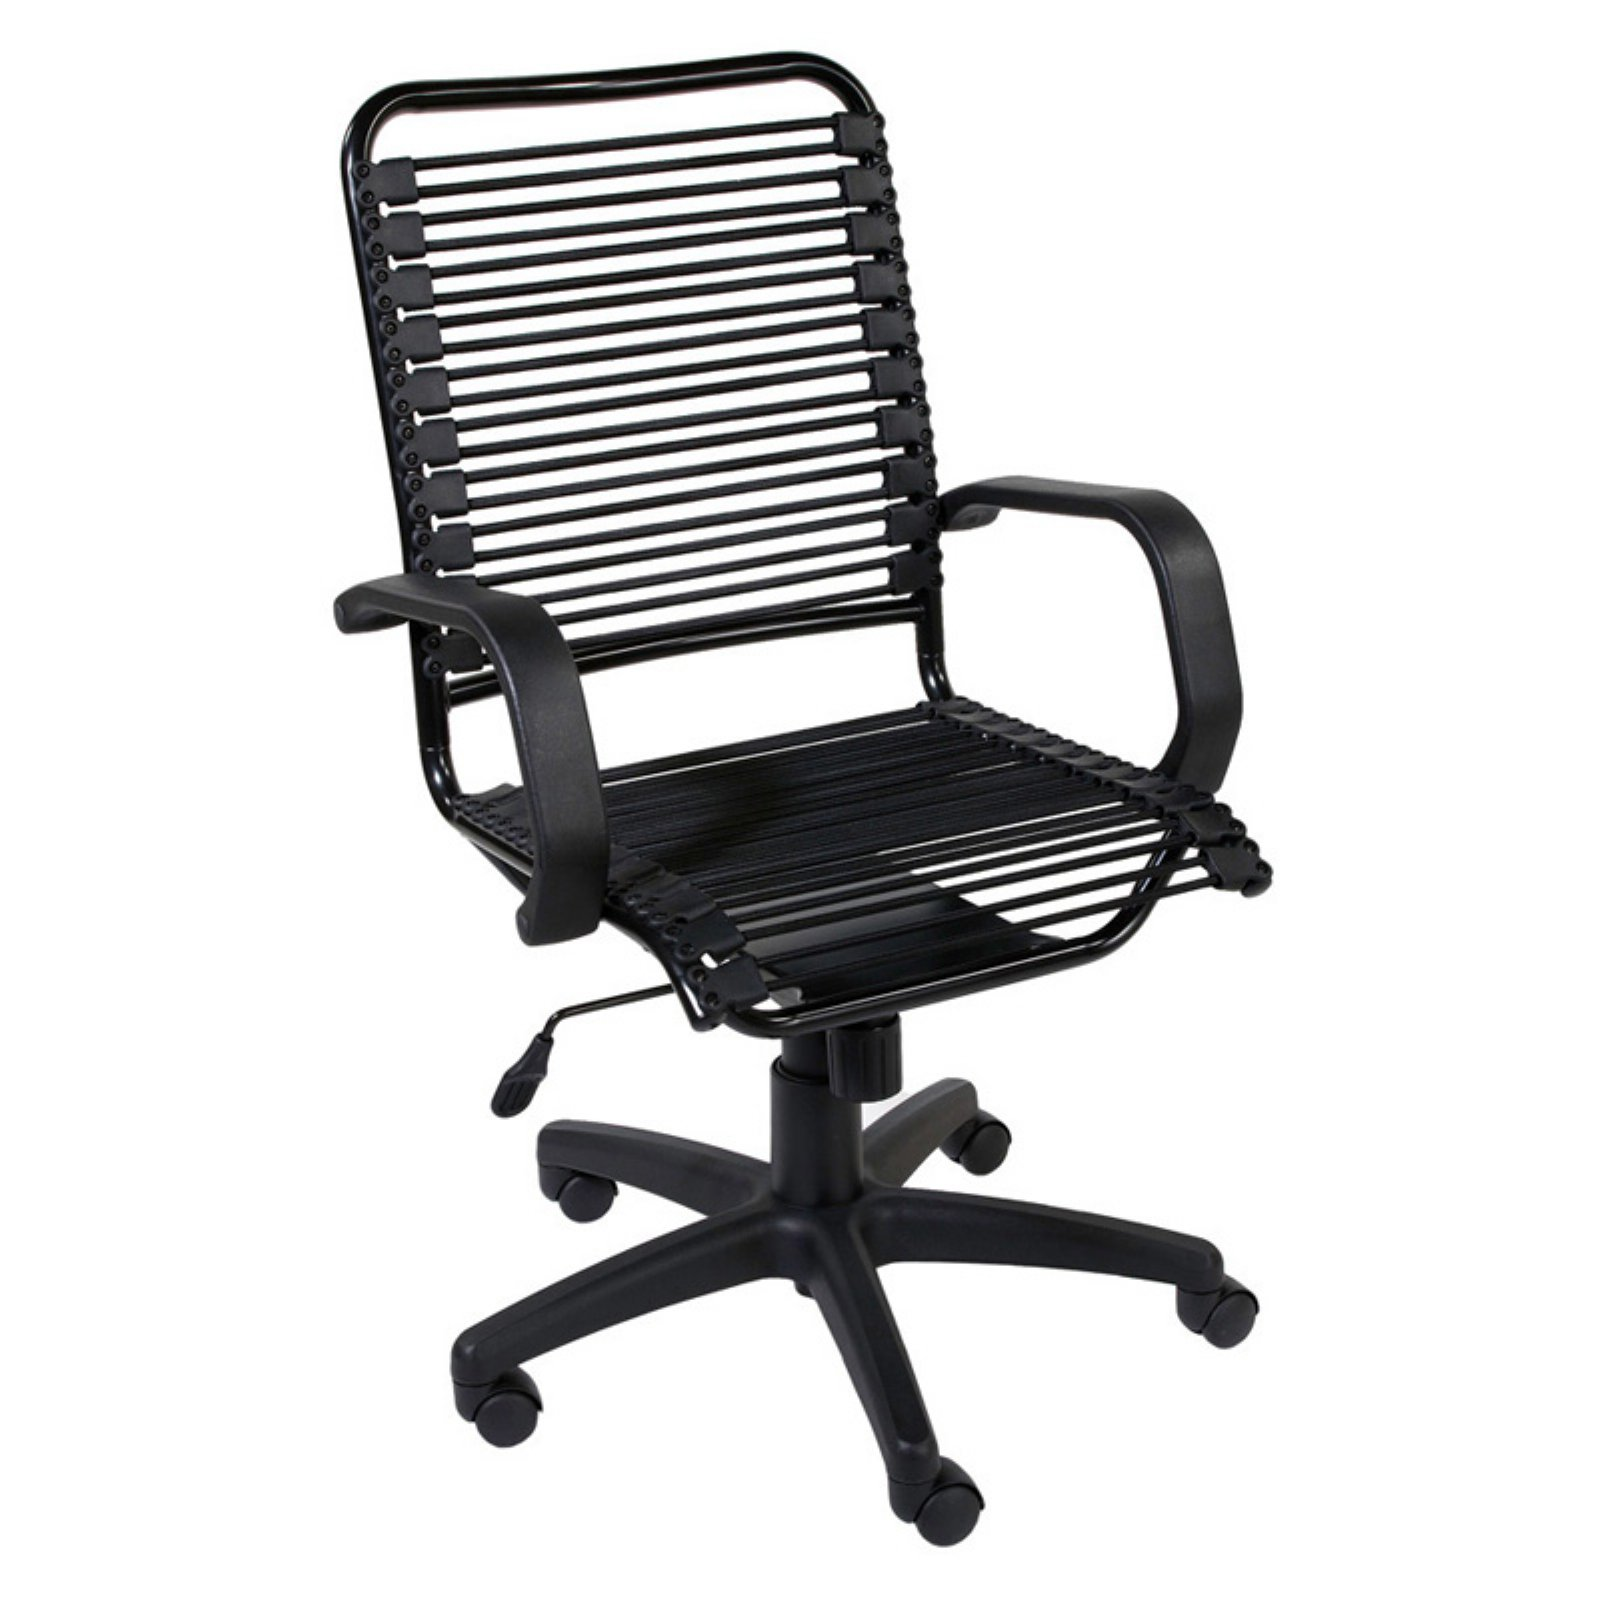 bungie office chair director covers target australia euro style bradley high back walmart